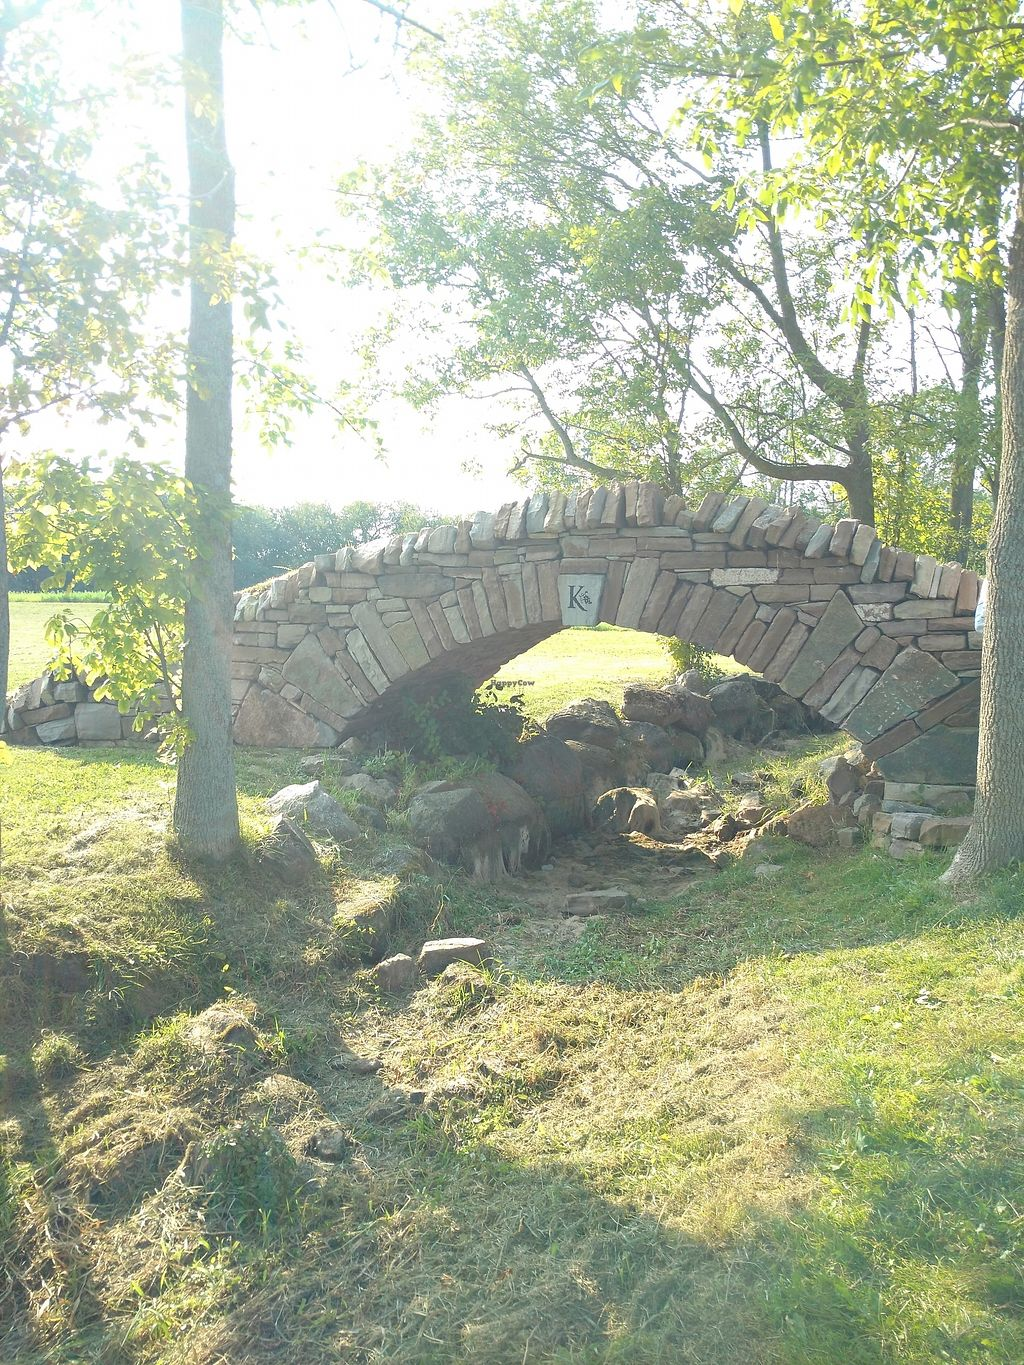 """Photo of Karlo Estates  by <a href=""""/members/profile/ThriftshopQueenie"""">ThriftshopQueenie</a> <br/>Nothing holding this together except vegan magic and physics. That bridge though, perfect place for a proposal. A must for any Canadian vegan couple for a little romance and wine.  <br/> January 2, 2018  - <a href='/contact/abuse/image/96193/342024'>Report</a>"""